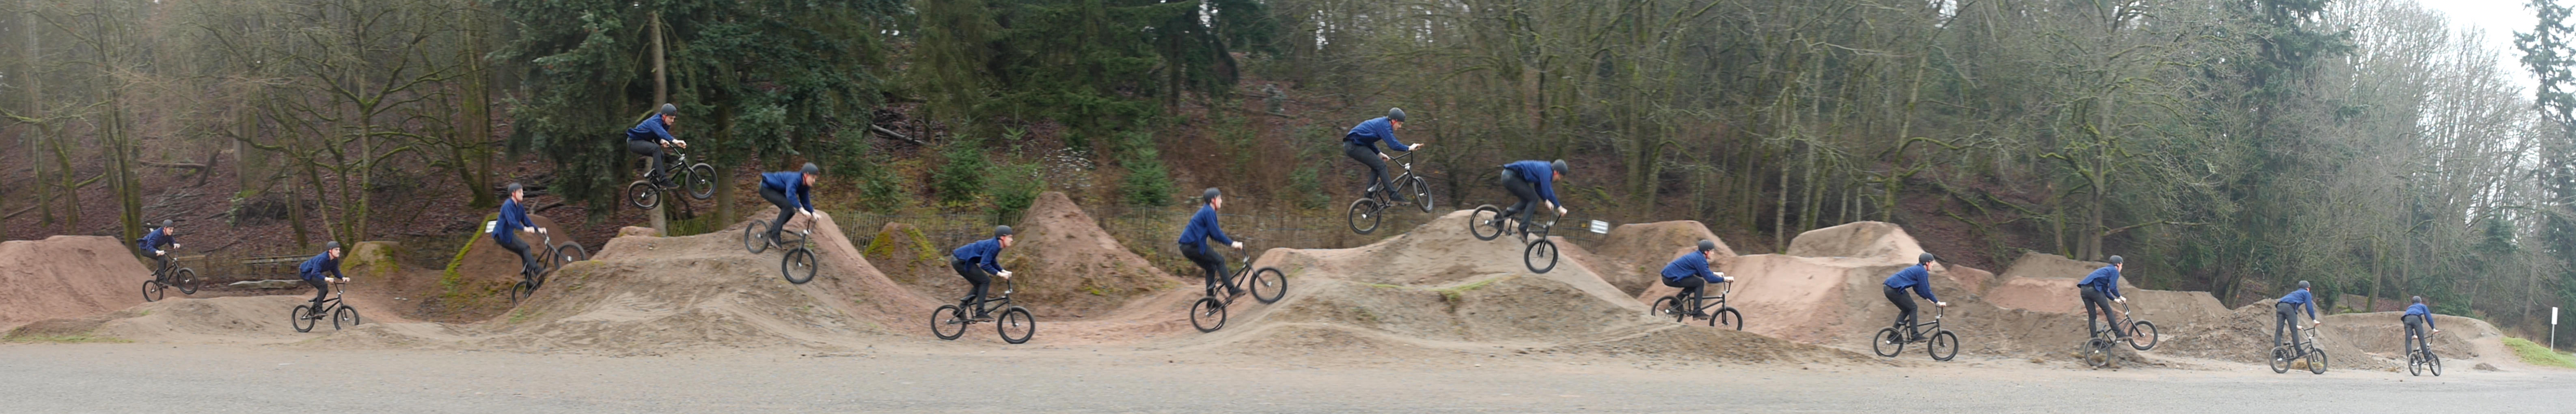 3 - dirt jumps